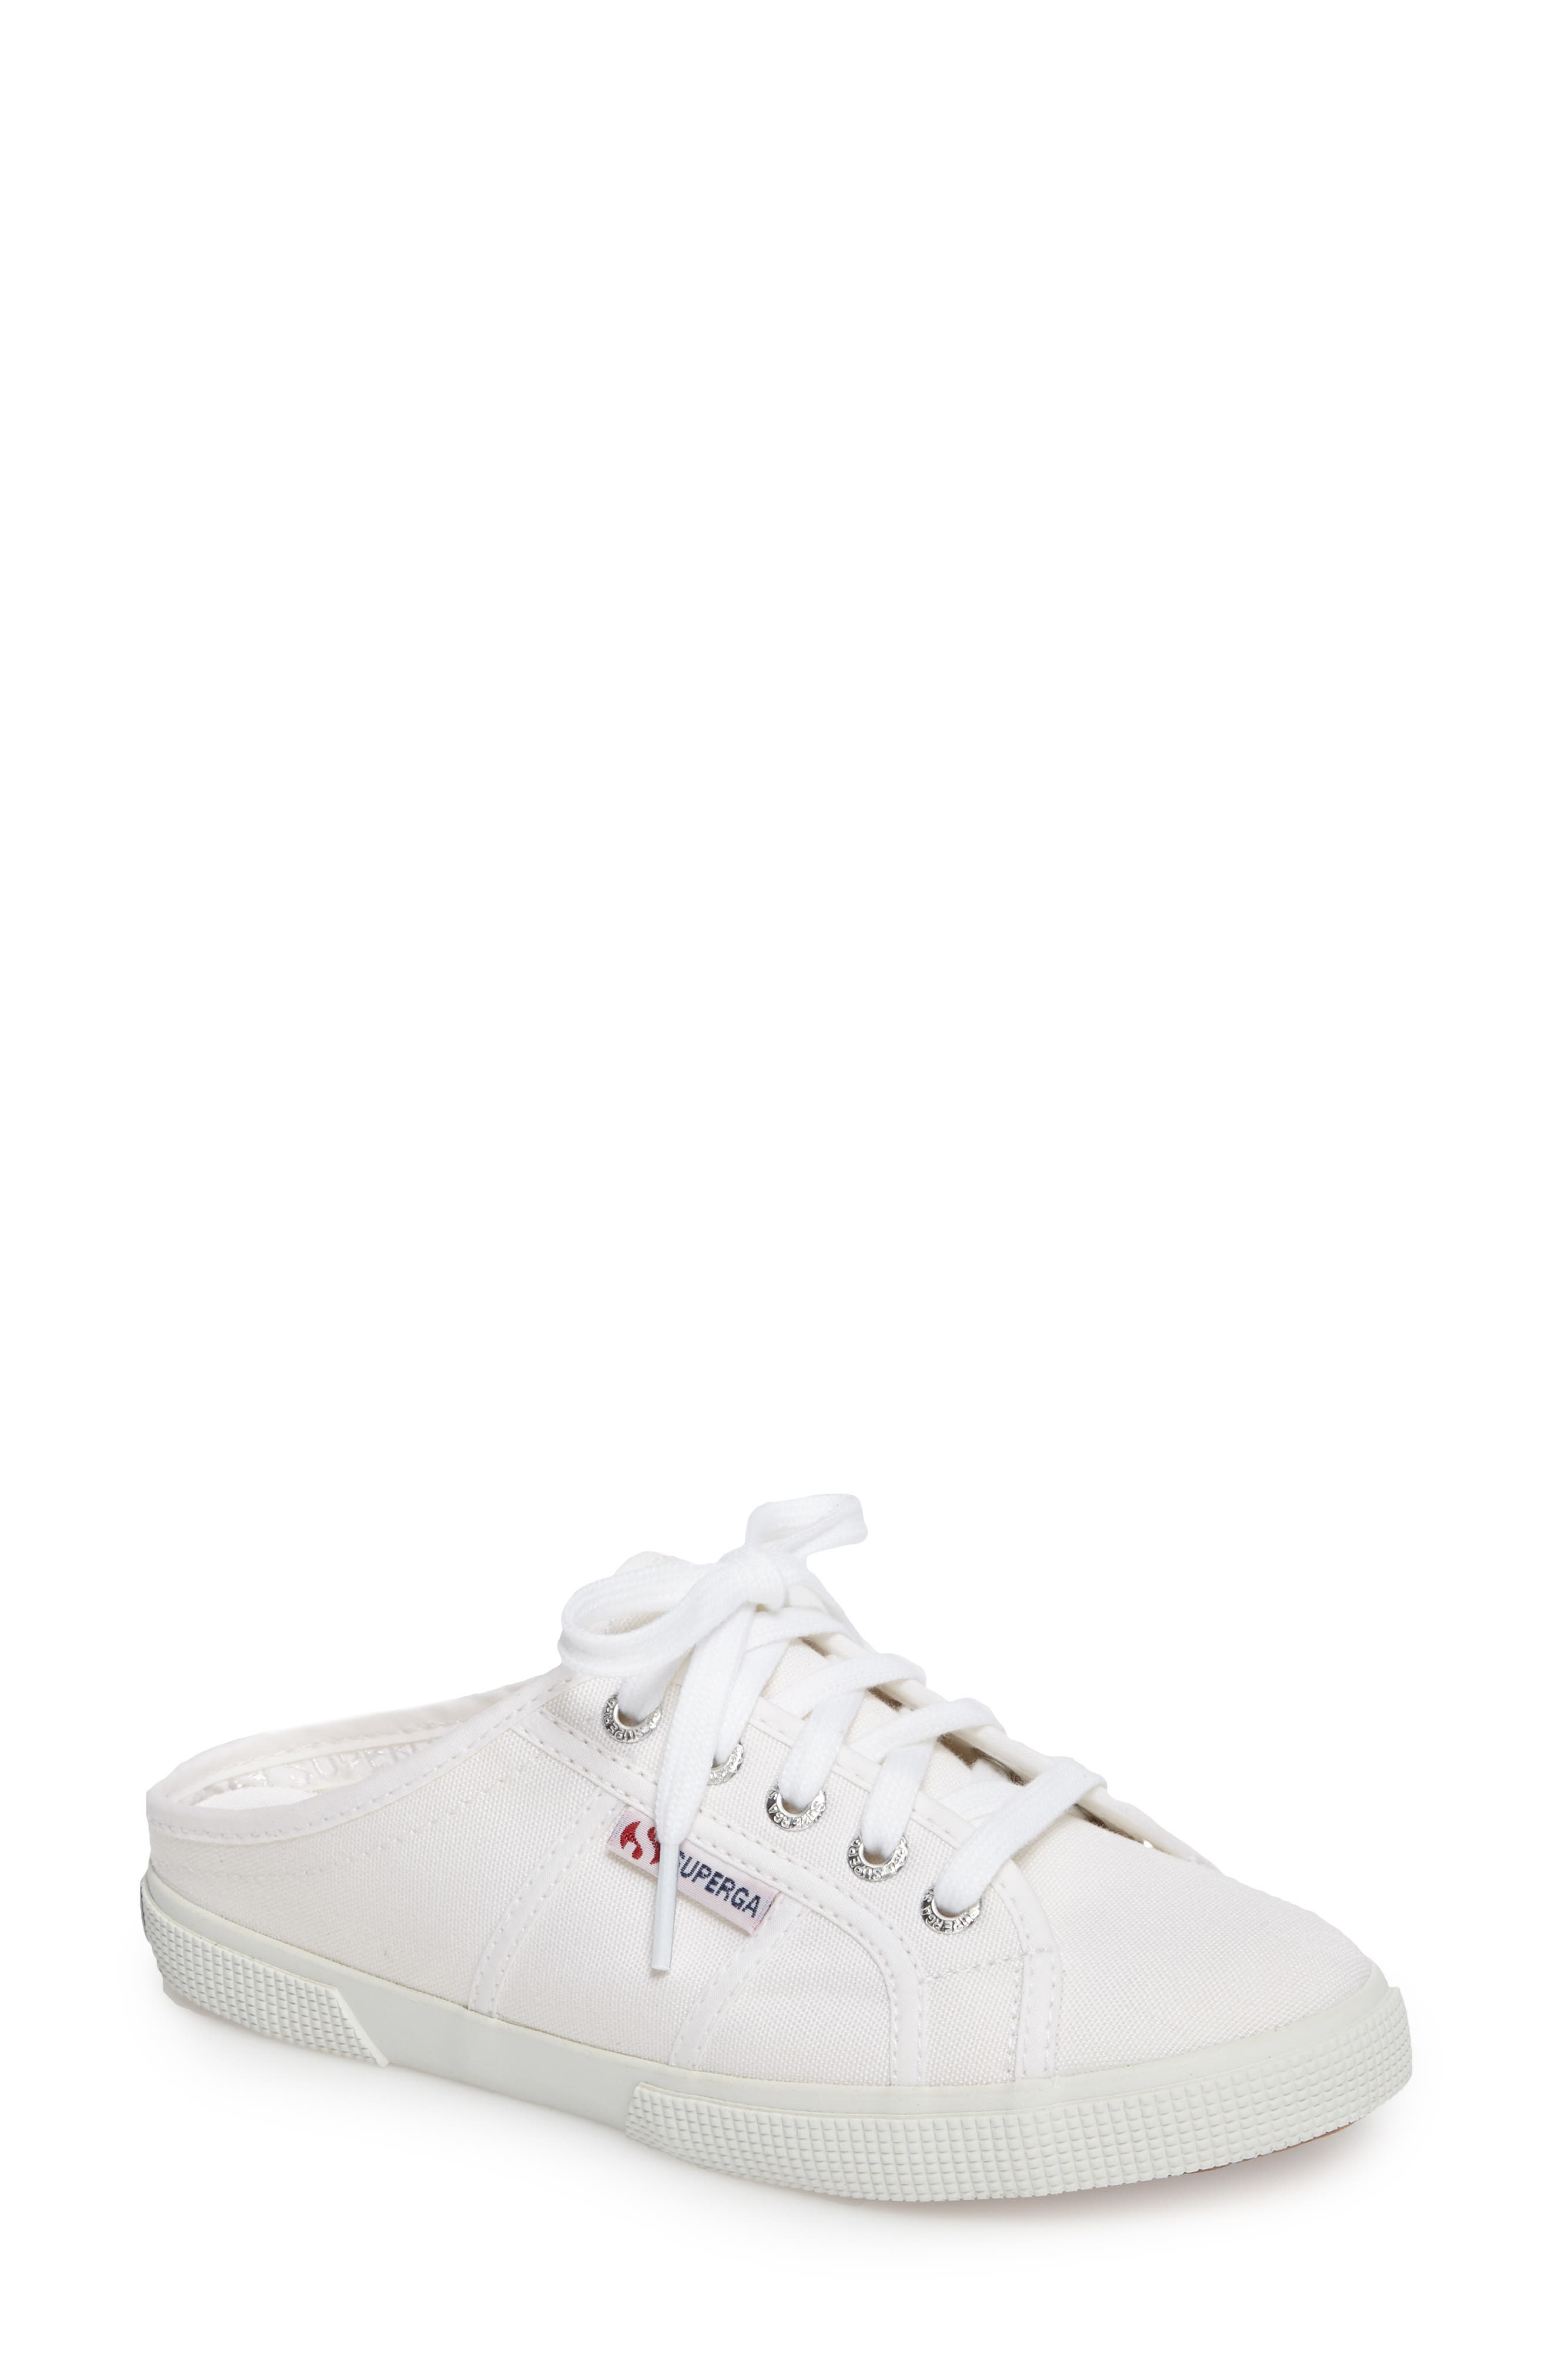 Main Image - Superga 2288 Sneaker Mule (Women)